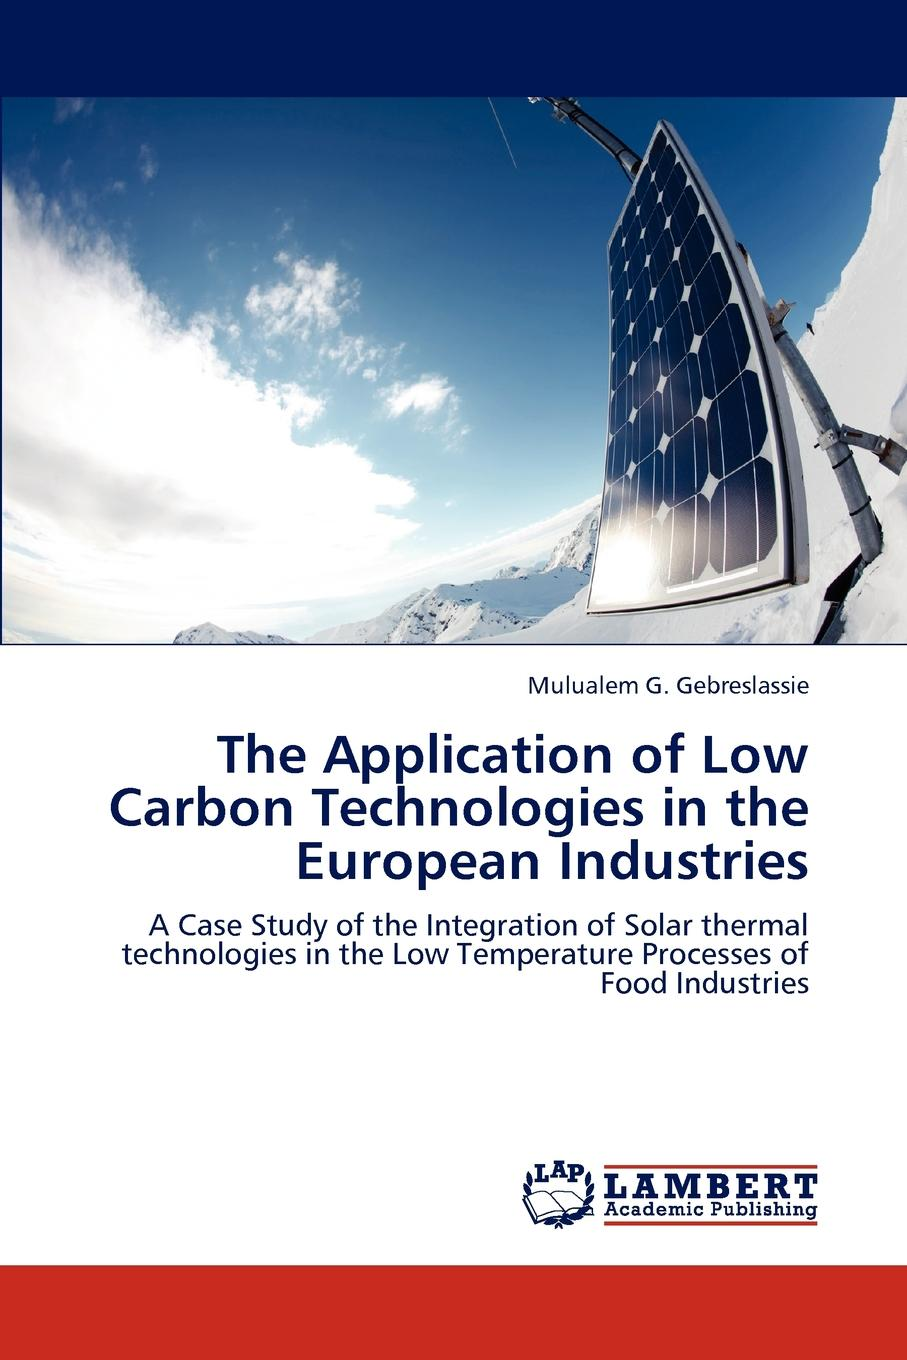 Mulualem G. Gebreslassie The Application of Low Carbon Technologies in the European Industries 1 2hp compact condenser chieves of higher seer seasonal energy efficiency ratio and eer energy efficiency ratio ratings